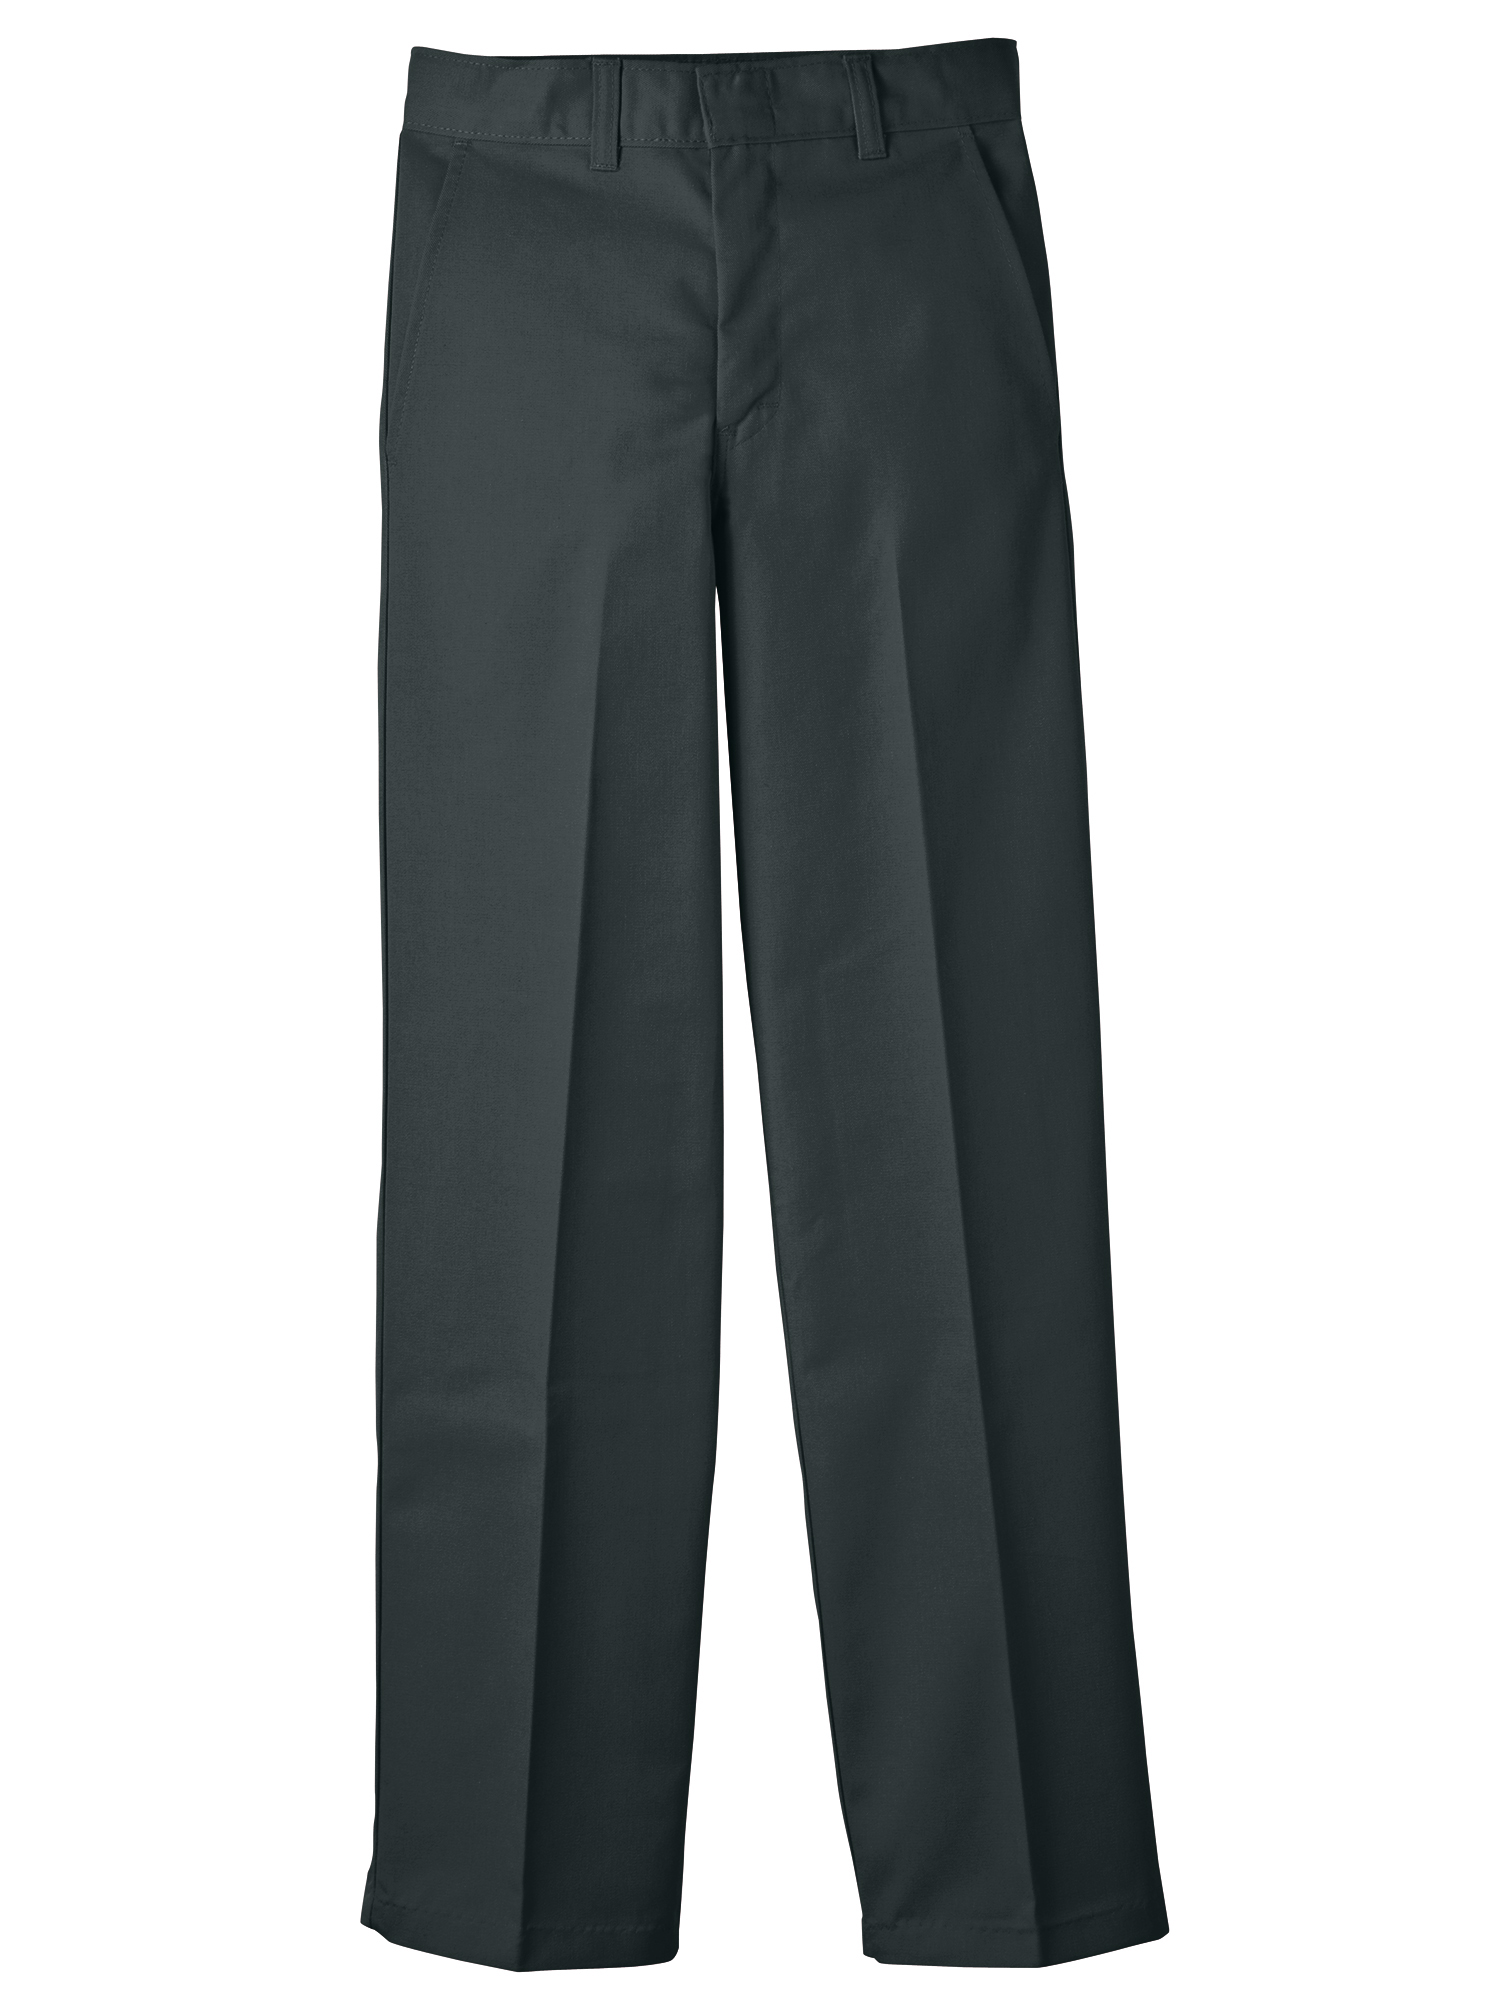 Boys' Uniform Classic Fit Straight Leg Flat Front Pants (Big Boys)